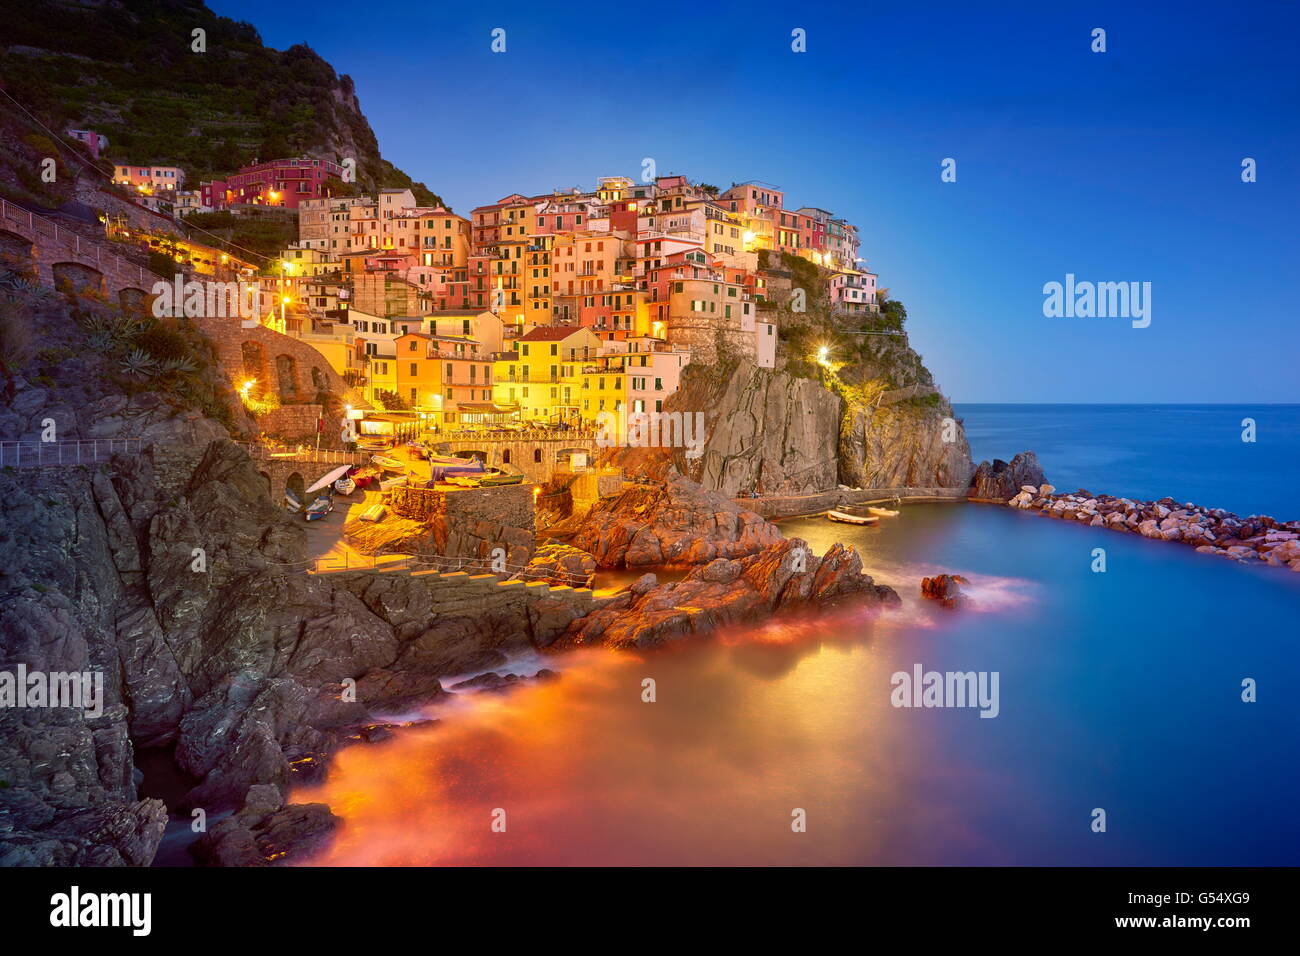 Manarola à soir nuit, Parc National des Cinque Terre, Ligurie, Italie, l'UNESCO Photo Stock